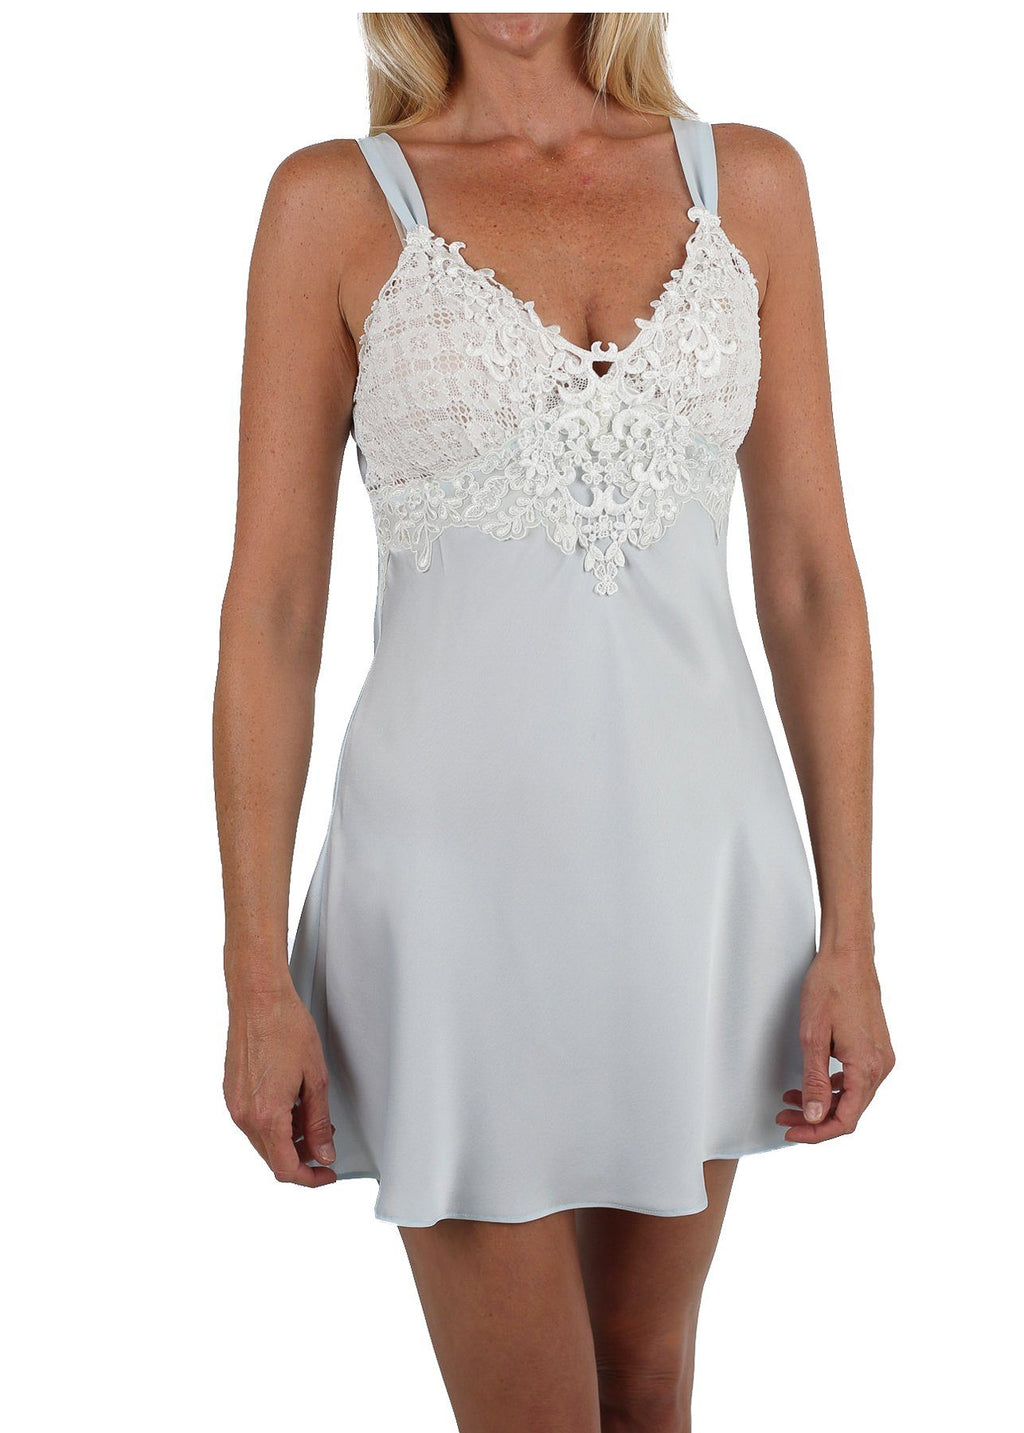 Enchanting Chemise - Bridal Blue Mystique Intimates